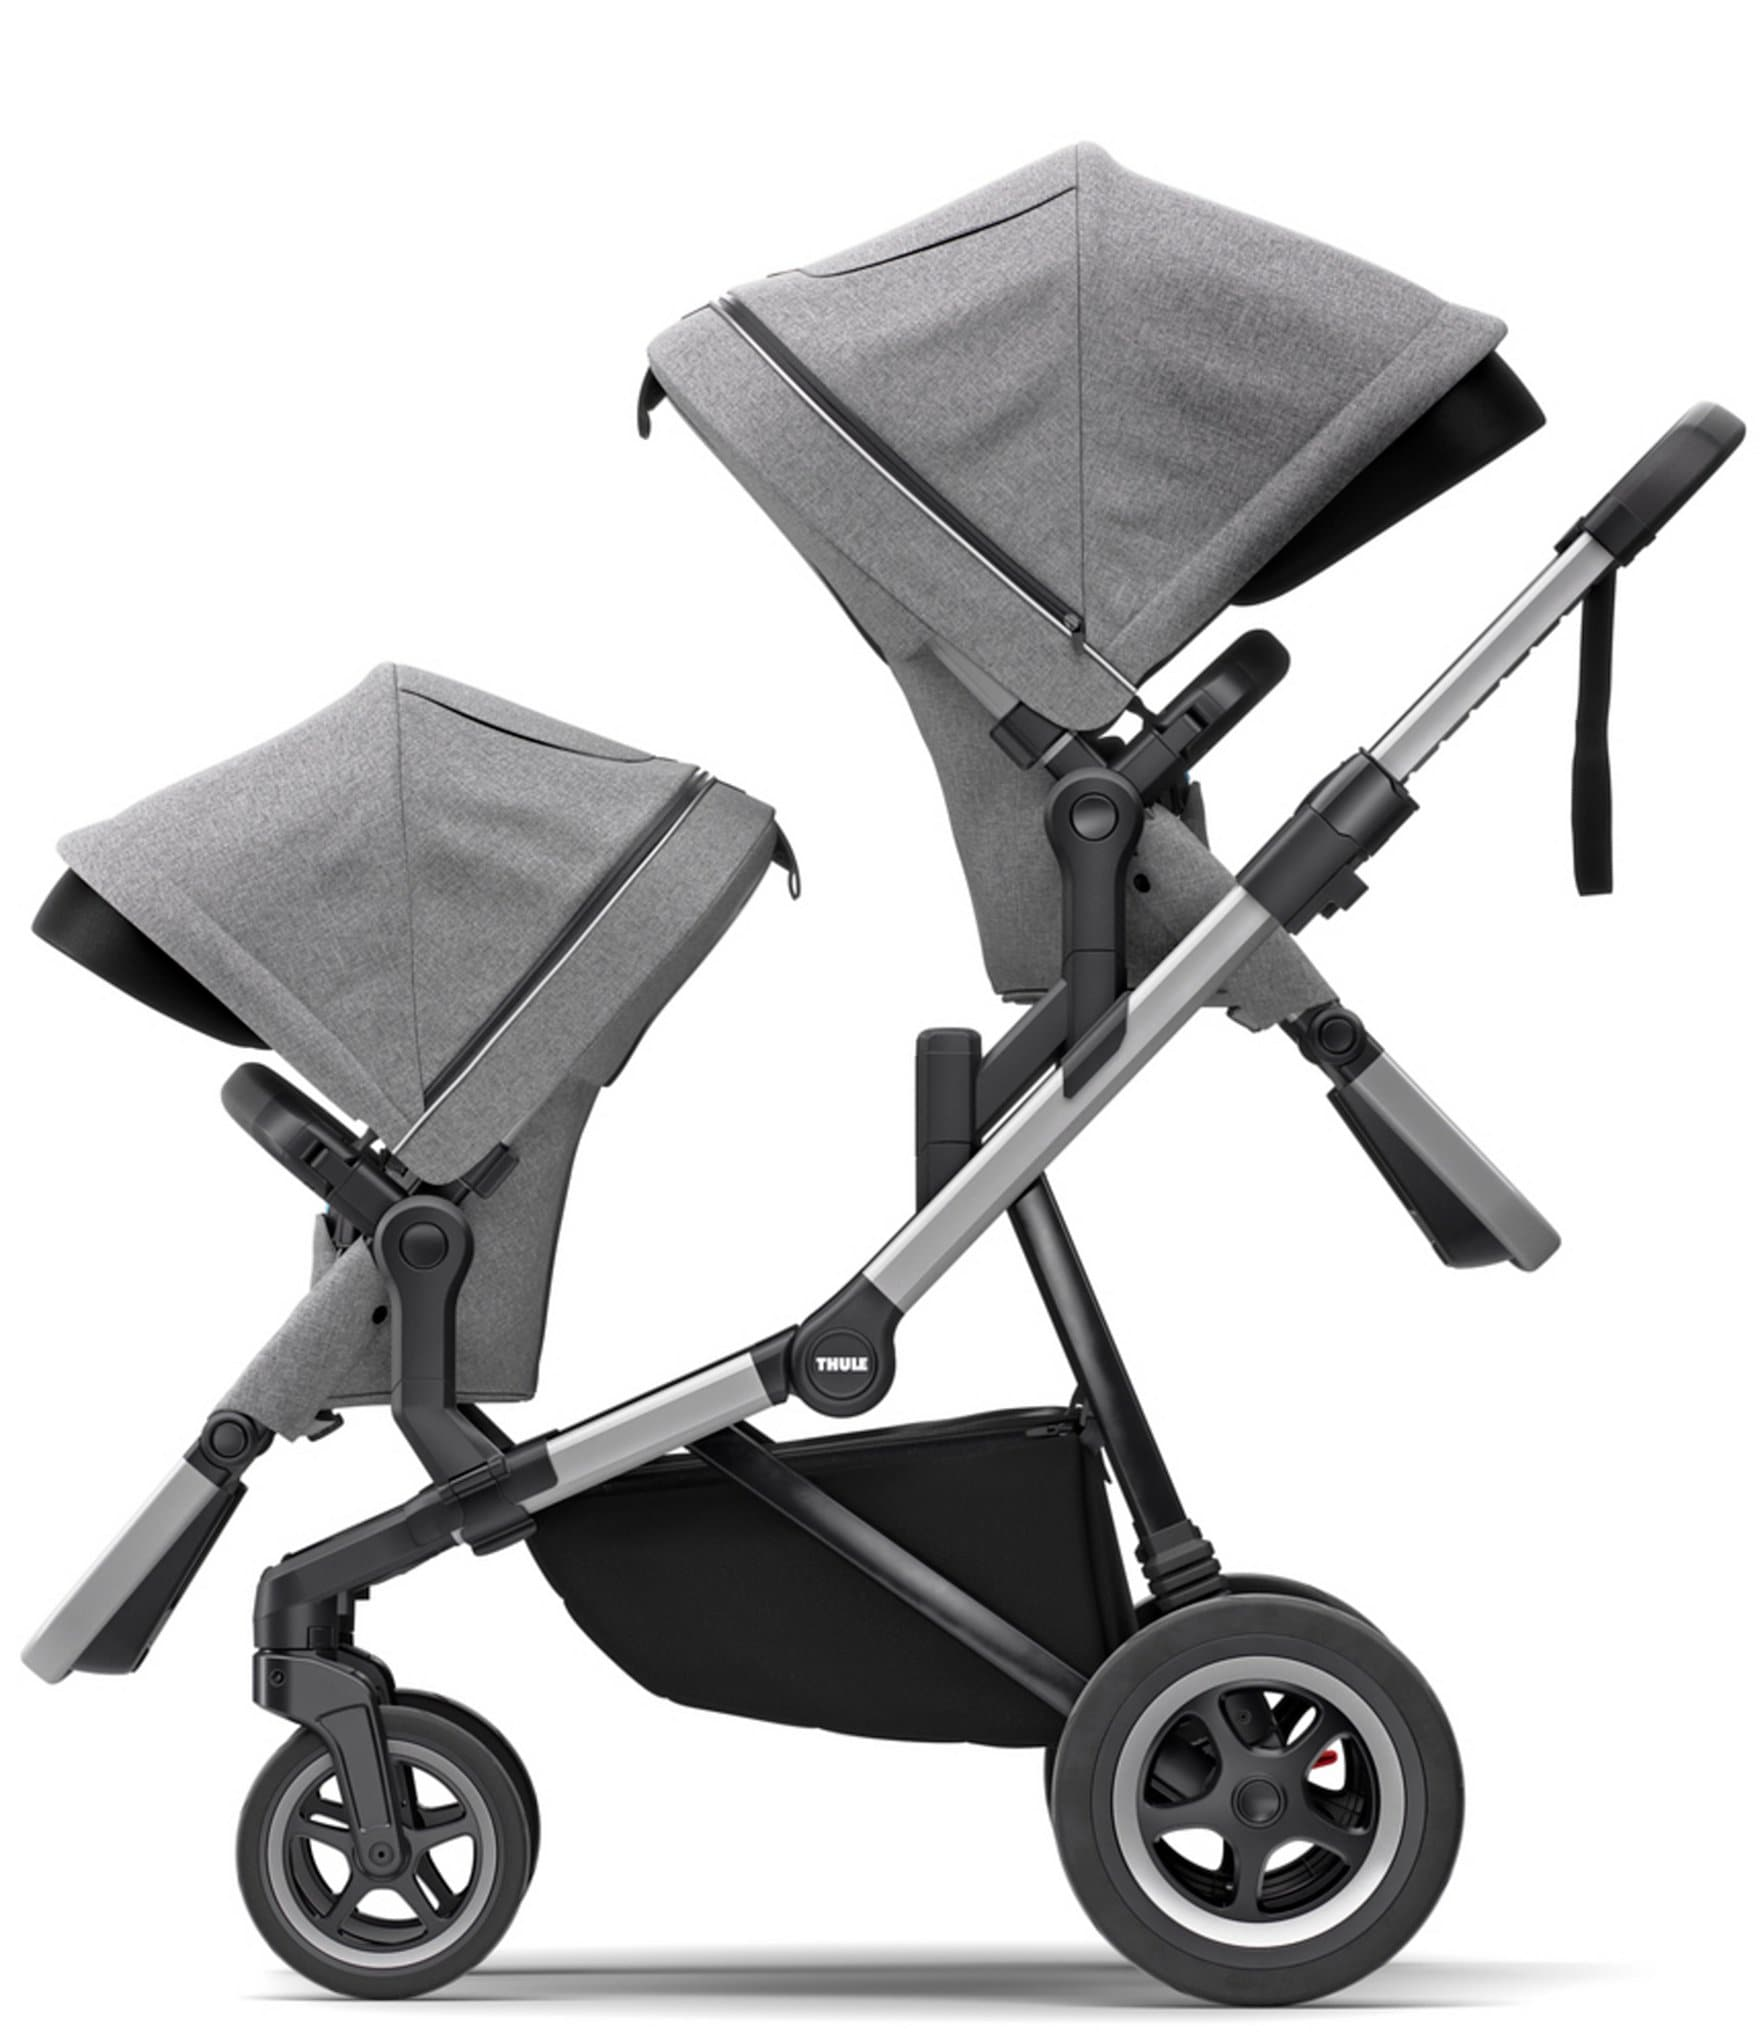 Thule Sleek City Stroller & Sleek Sibling Seat Double ...